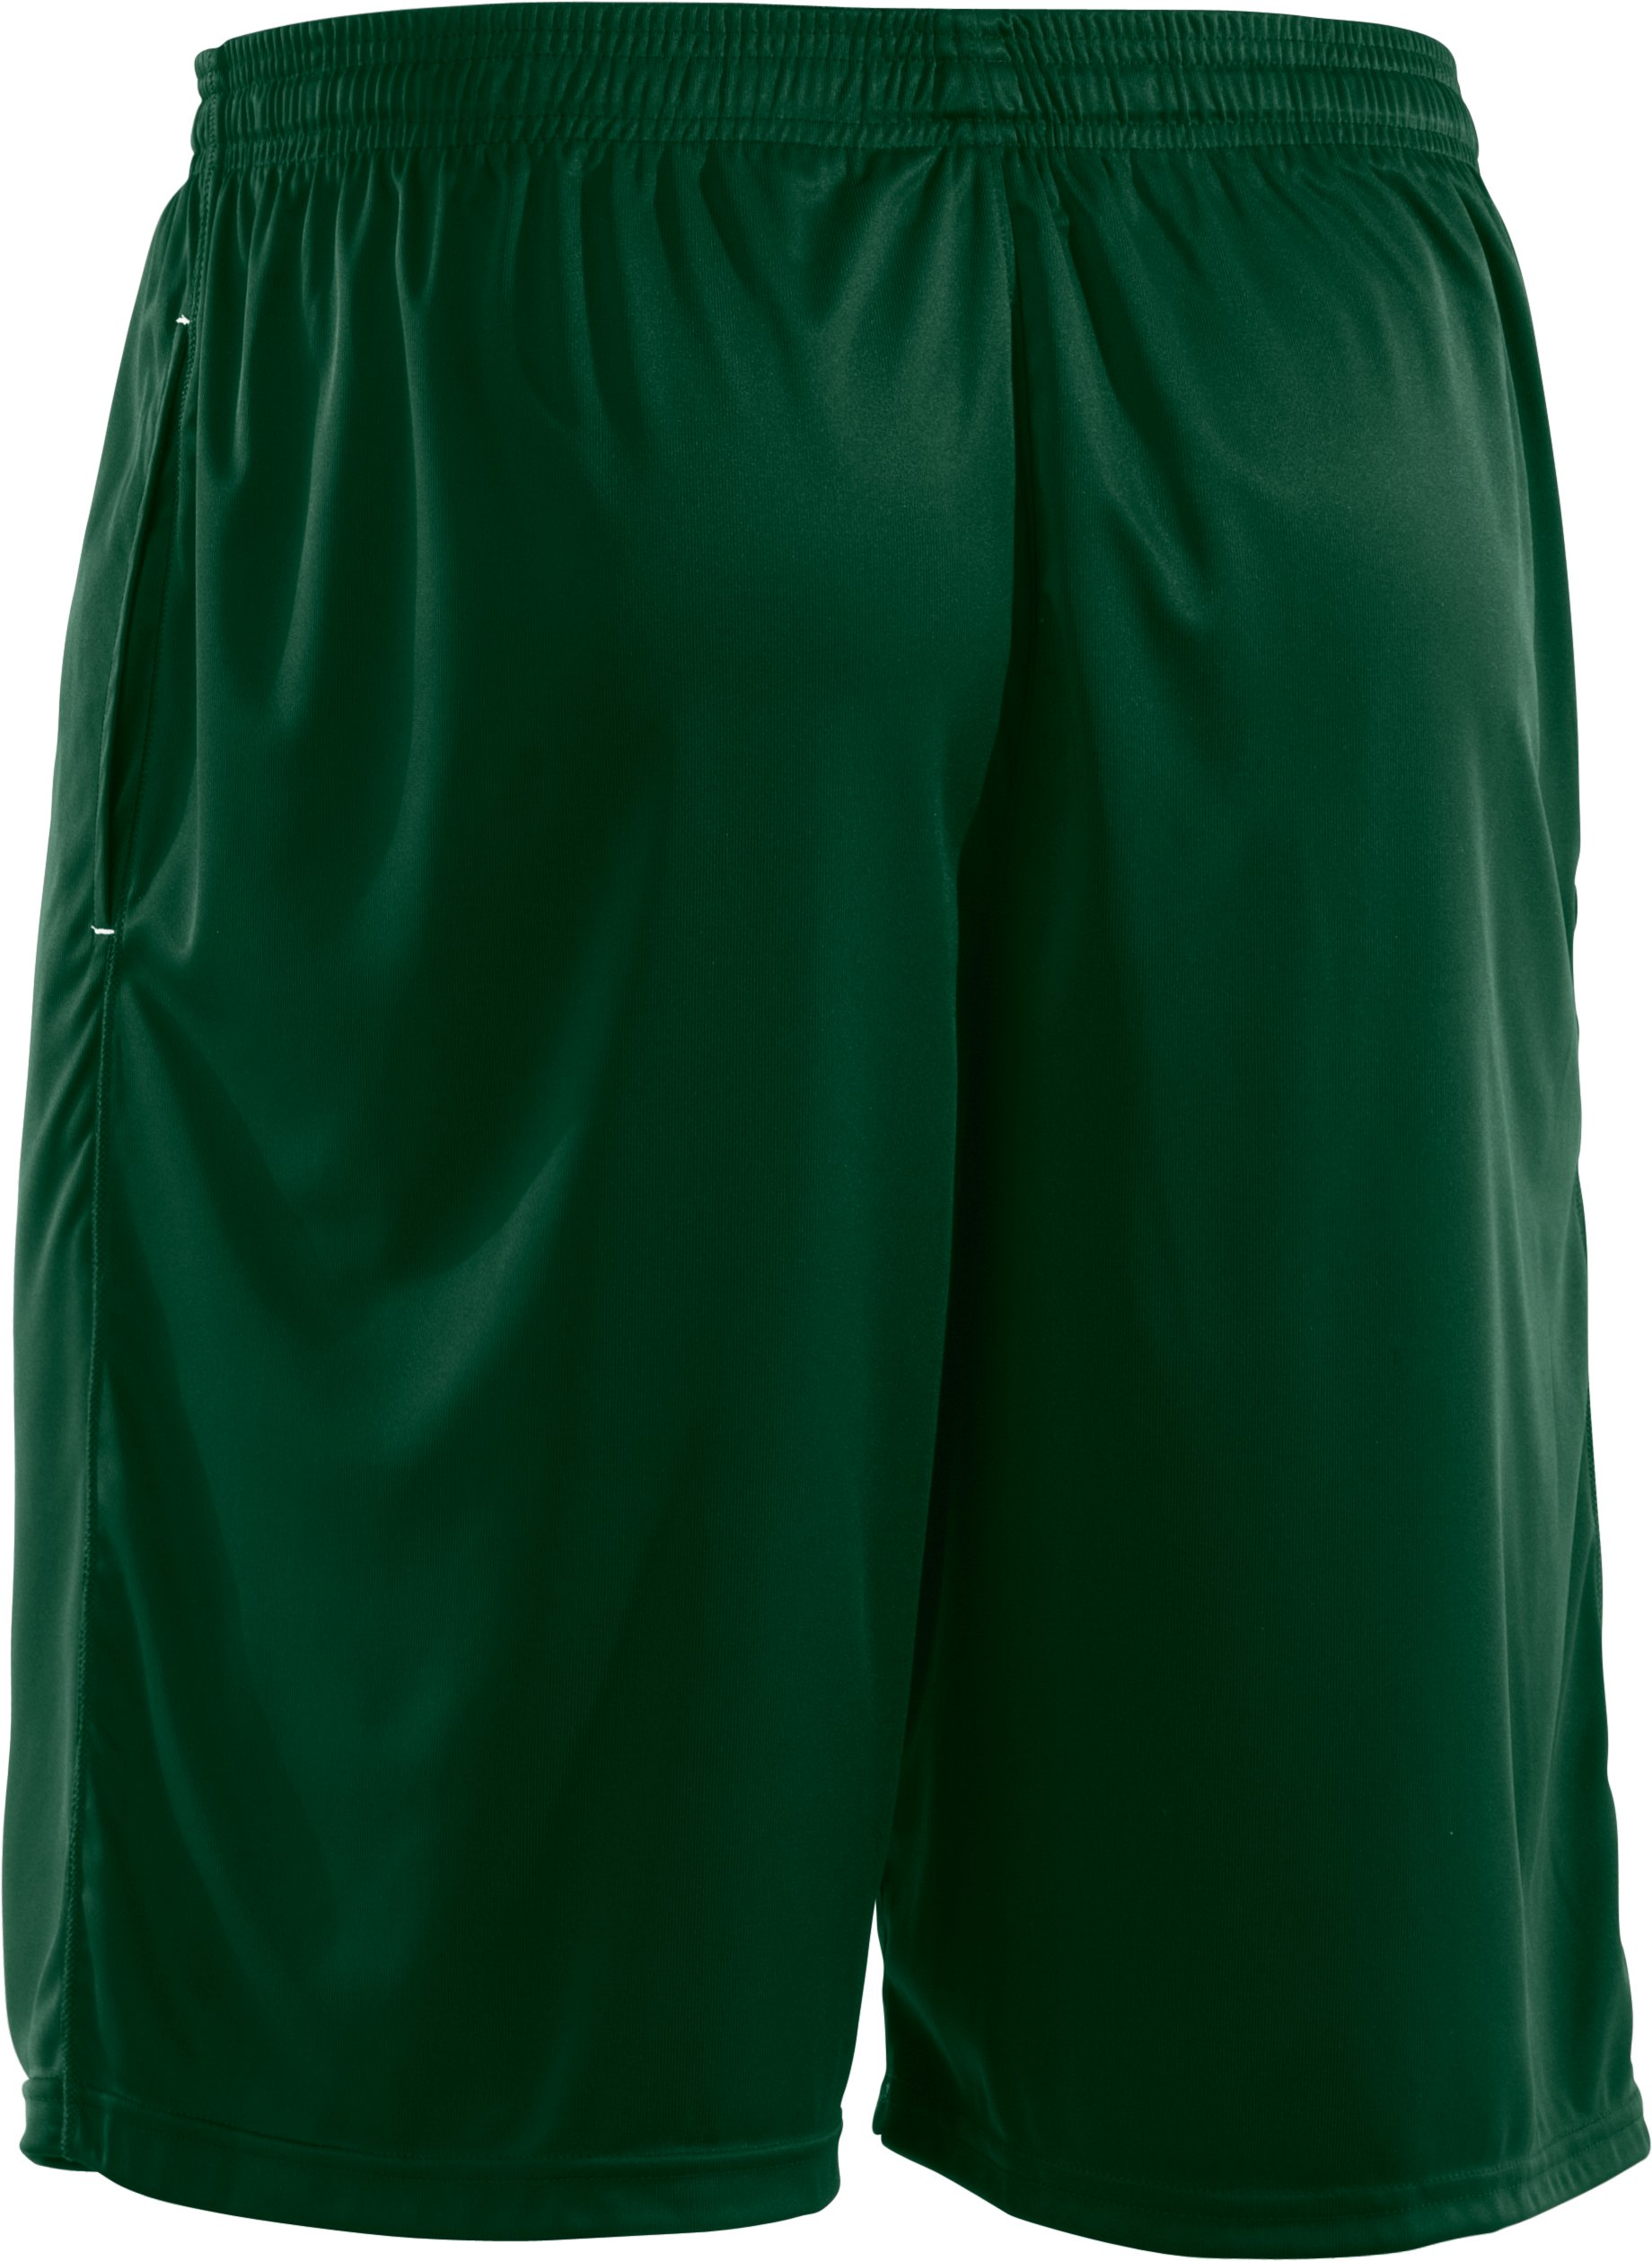 Men's UA Micro Solid Shorts, Forest Green,